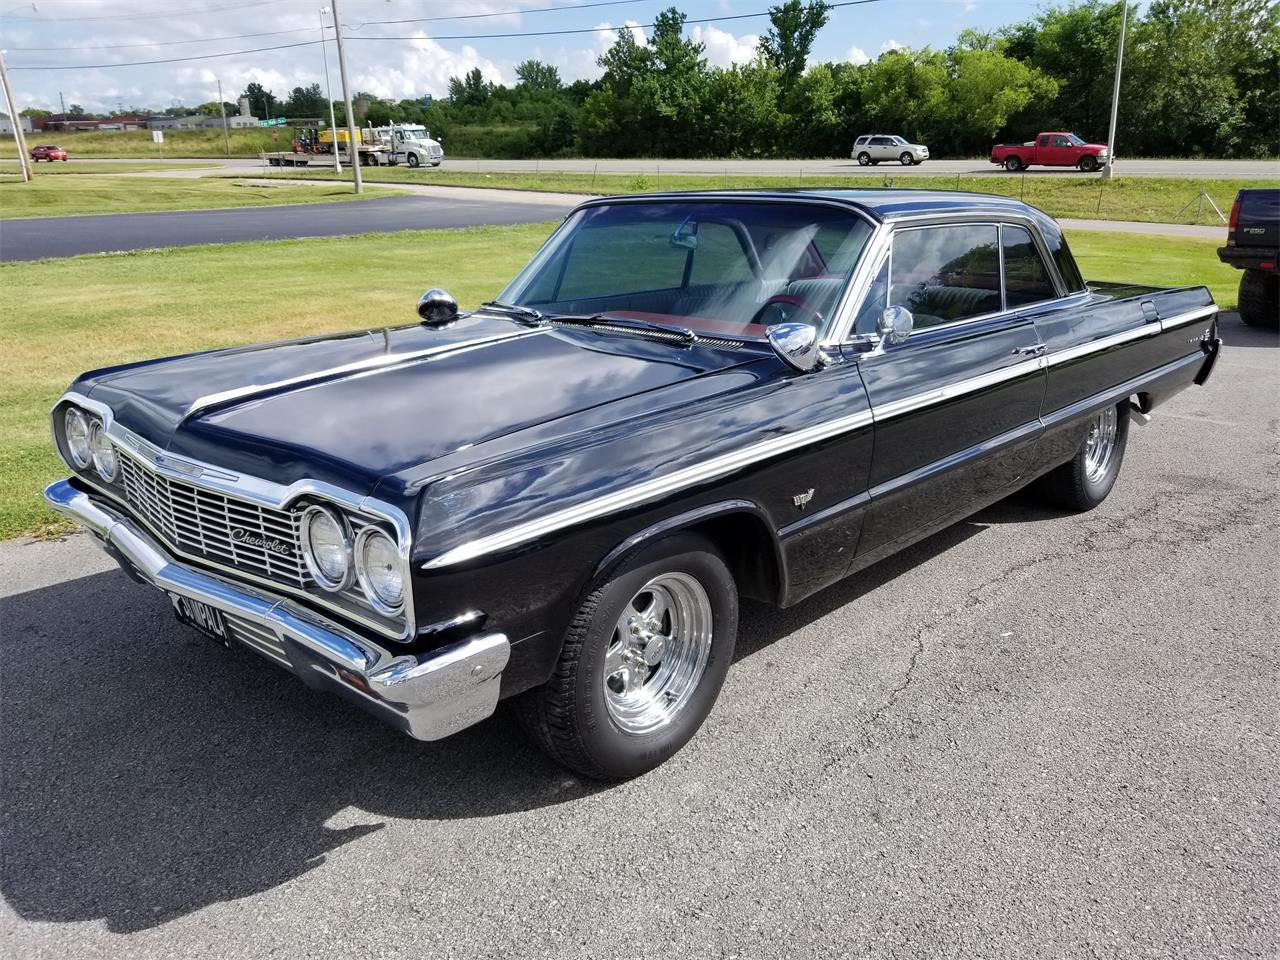 1964 Chevrolet Impala Ss For Sale Classiccars Com Cc 1106707